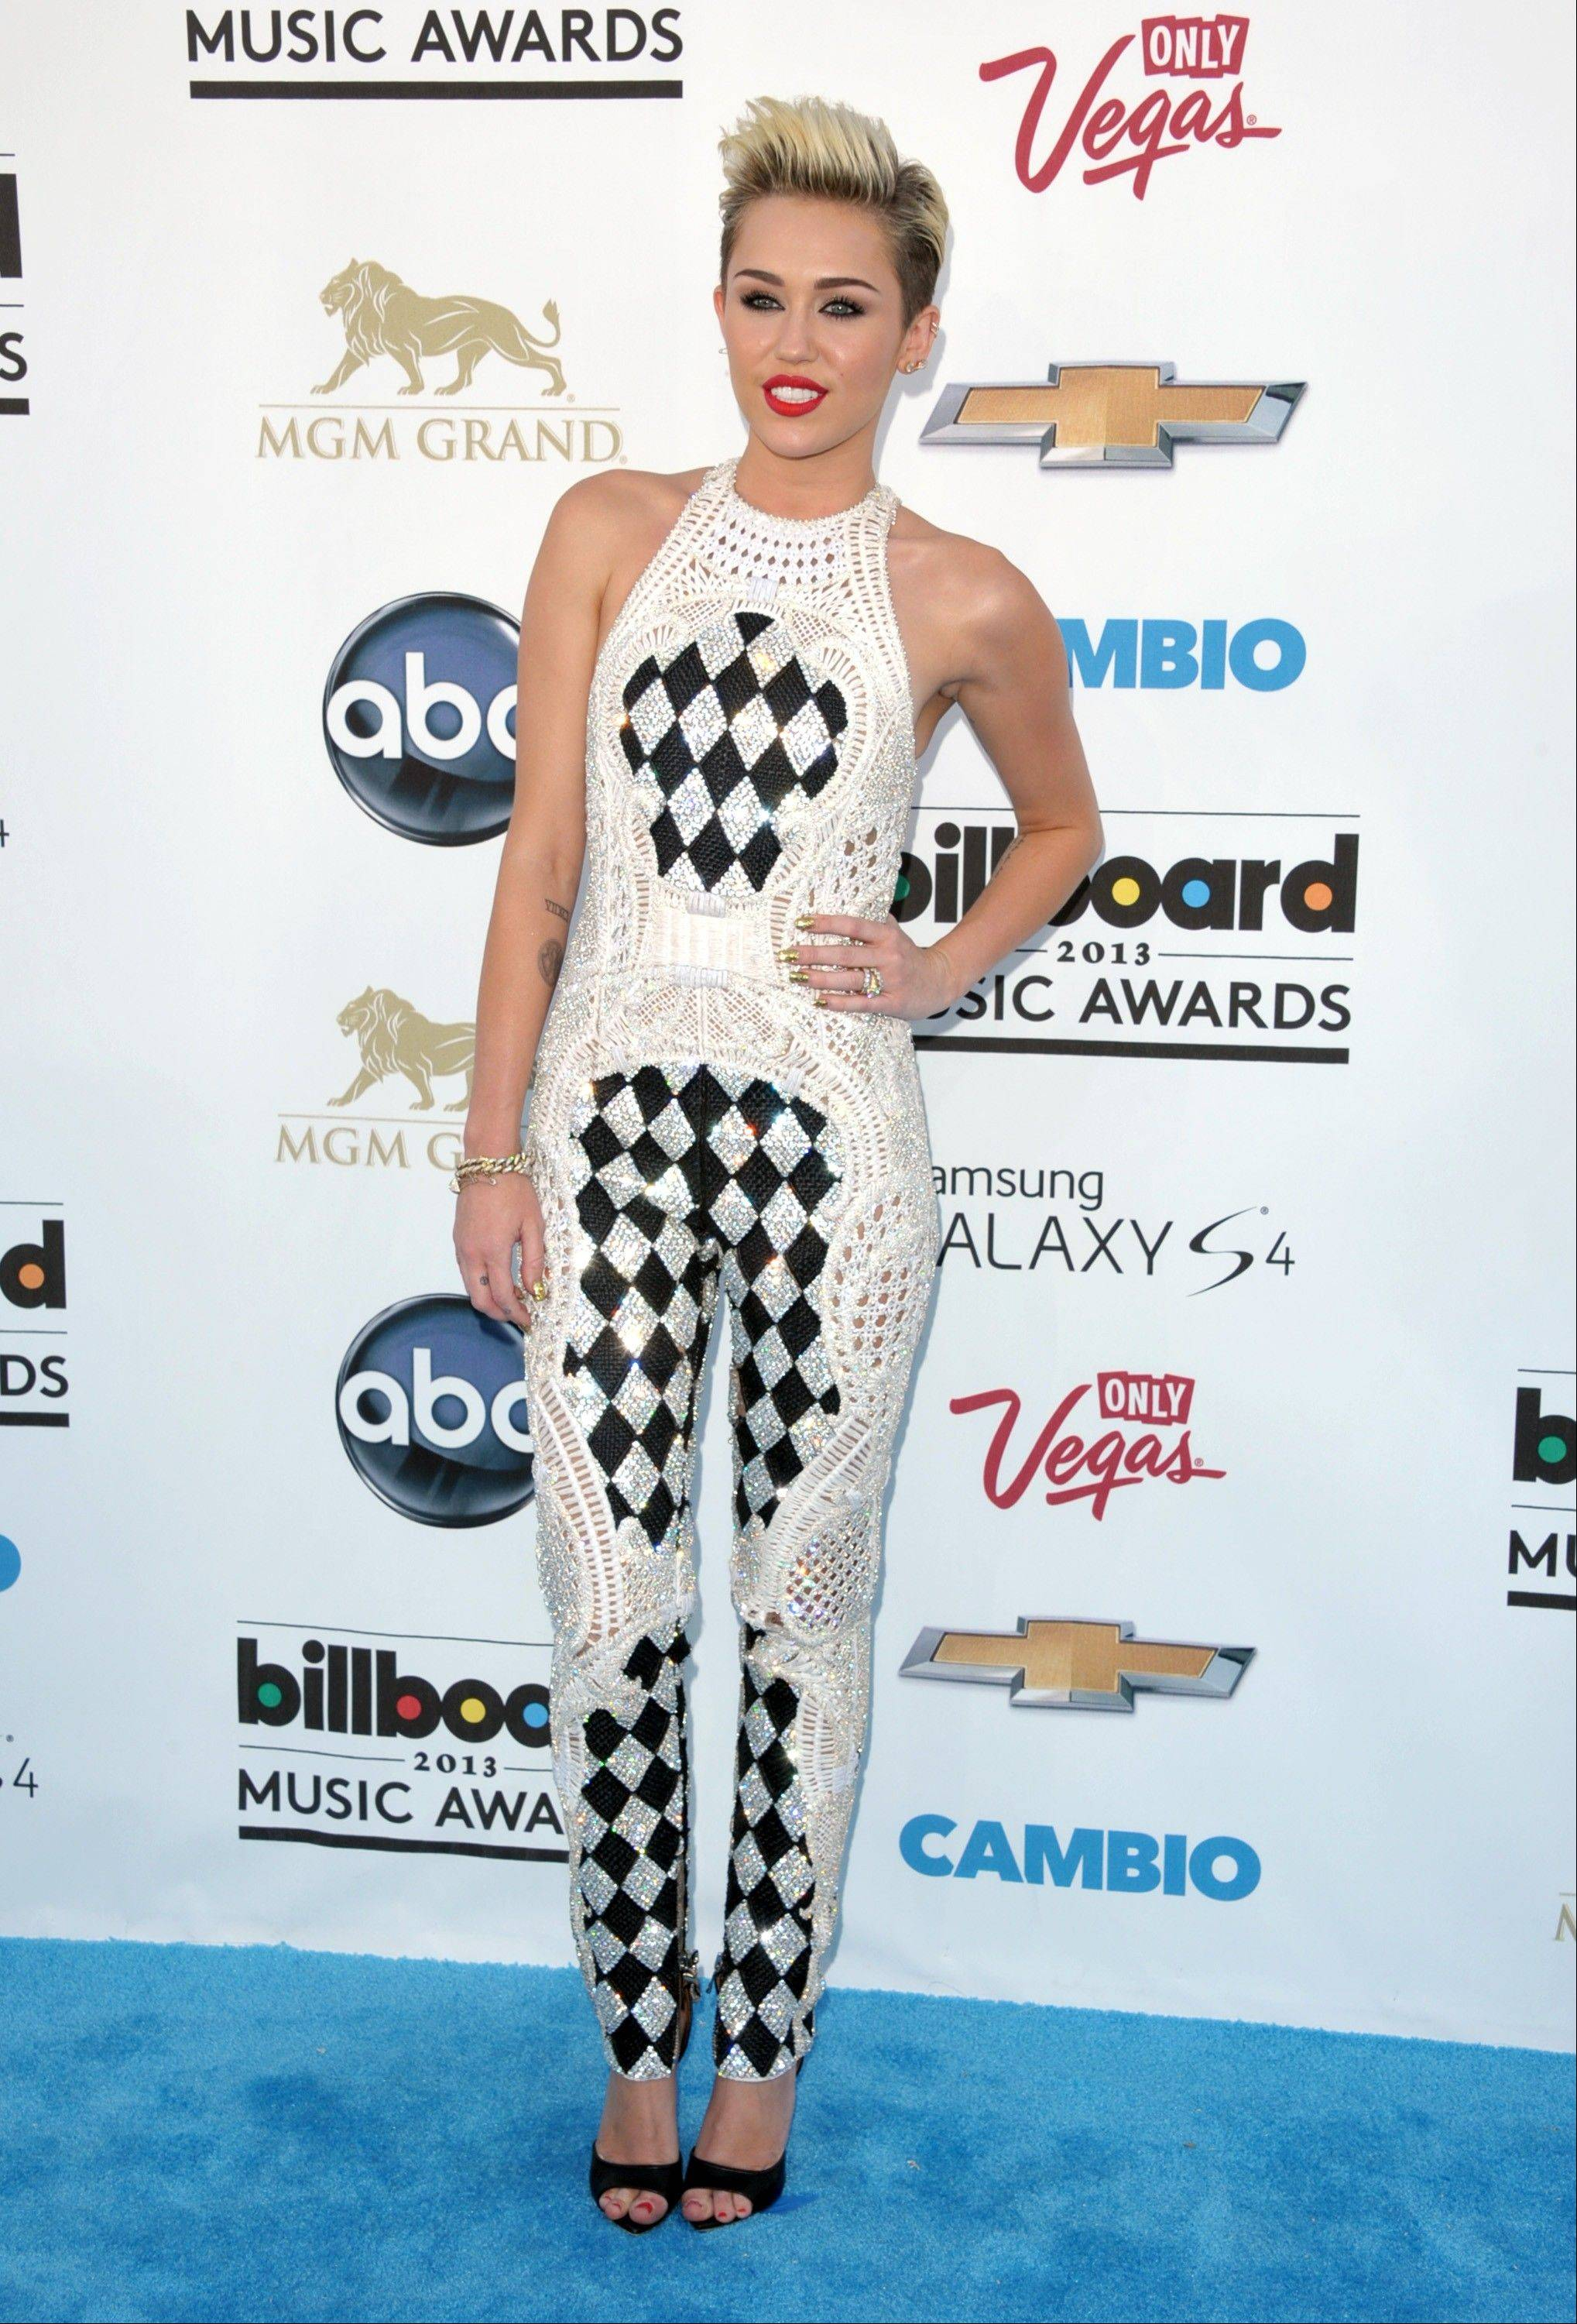 This May 19, 2013 file photo shows Miley Cyrus at the Billboard Music Awards at the MGM Grand Garden Arena in Las Vegas. It must be mentioned that Miley Cyrus embodied more than one fashion trend this year. Is Cyrus becoming a fashion icon? Not by the standard definition. But heading into 2014 she was one of the most-watched people on the planet.